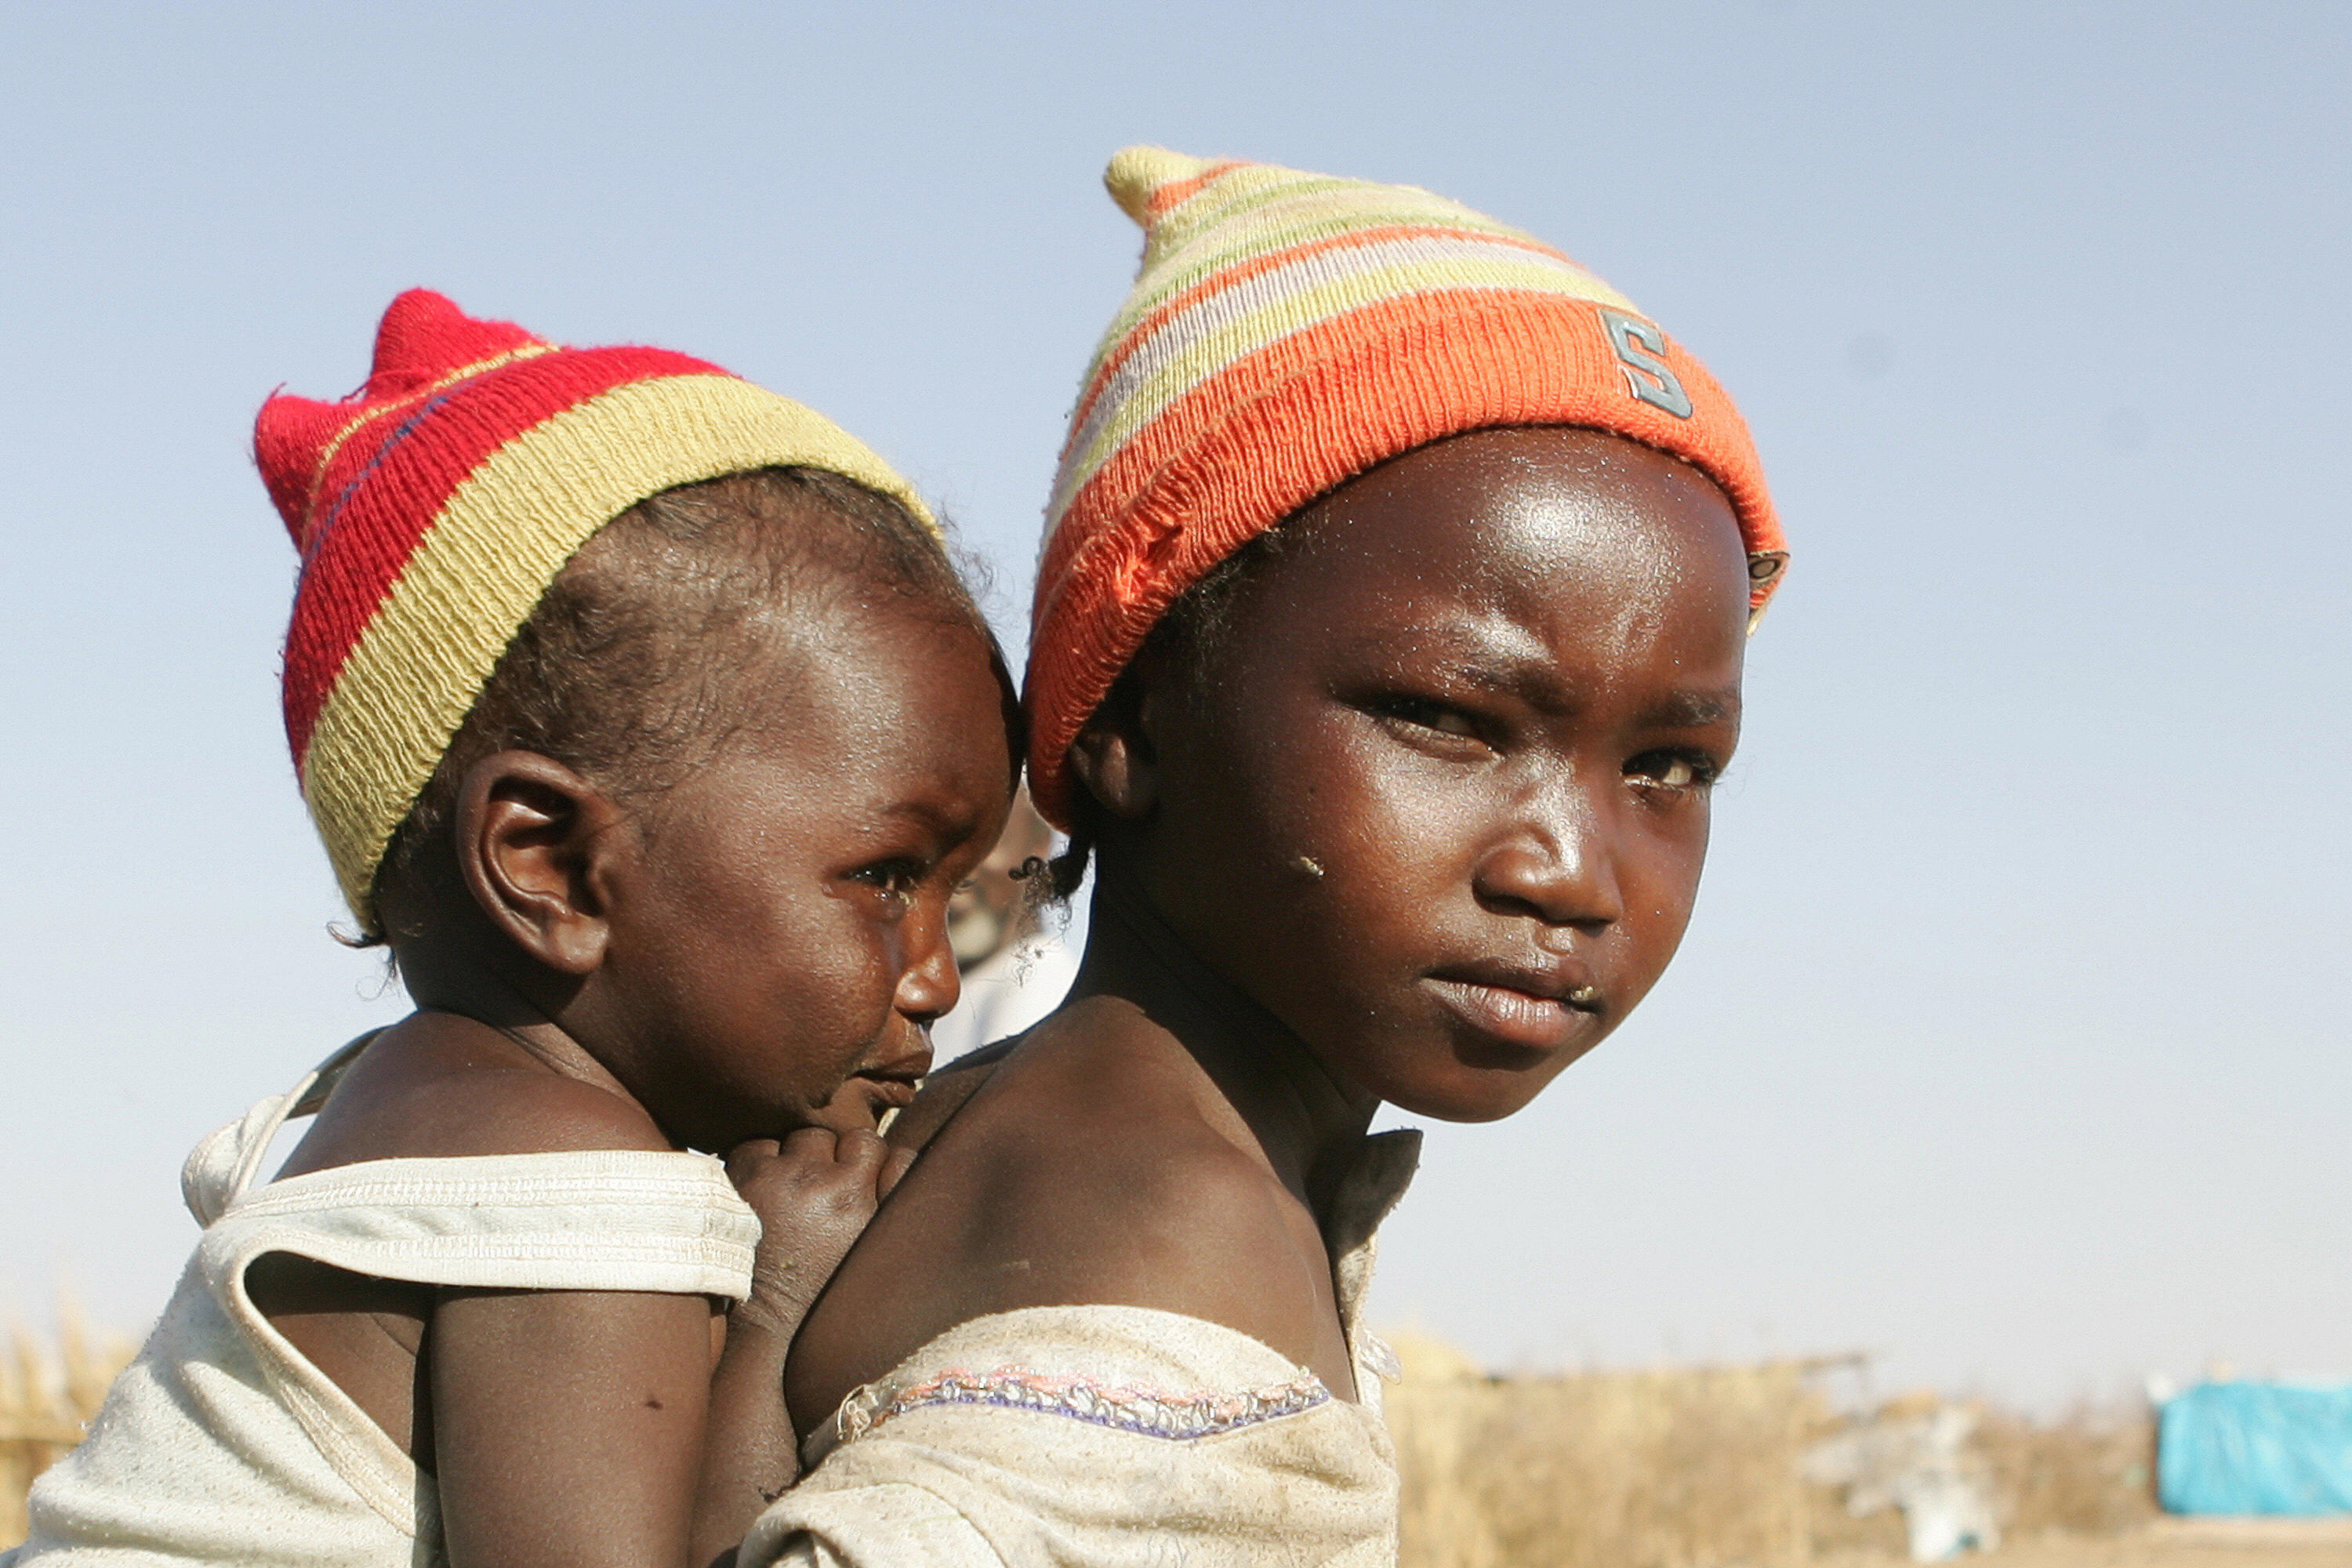 A displaced Sudanese girl carries her sister at the Otach Displaced Persons camp in the city of Nyala, in Sudan's strife-torn Darfur region, 22 February 2007.